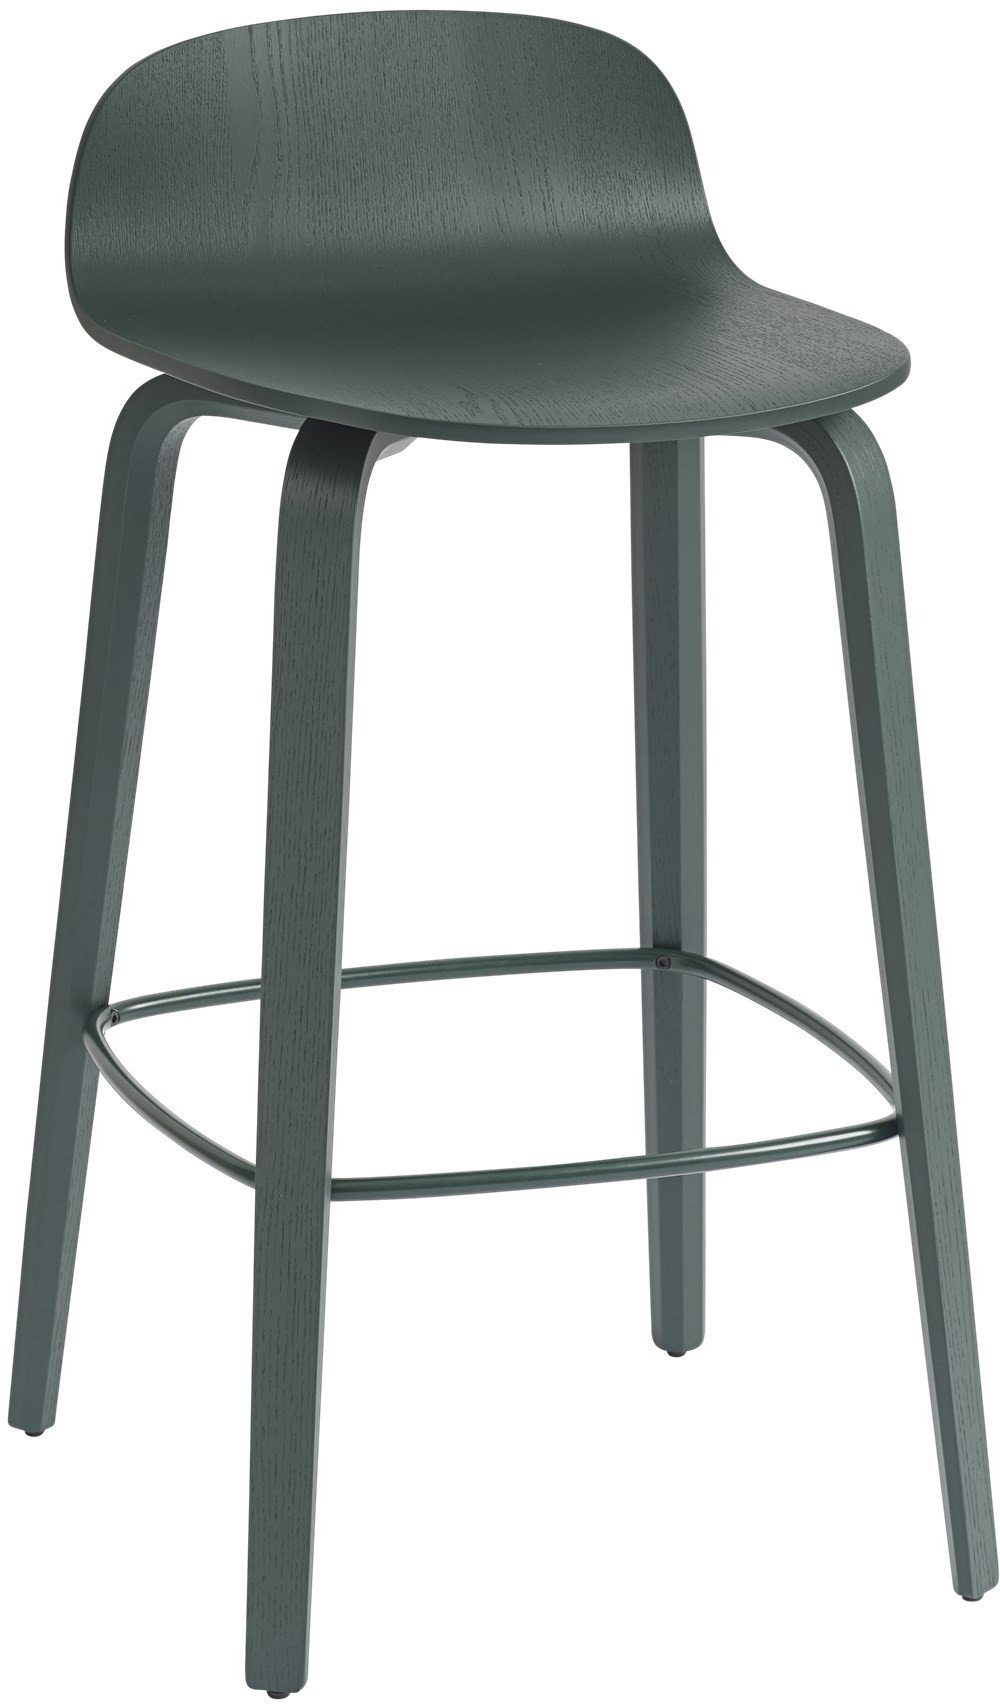 Bar Stool Visu 65 cm Dark Green by M. Tolvanen for Muuto